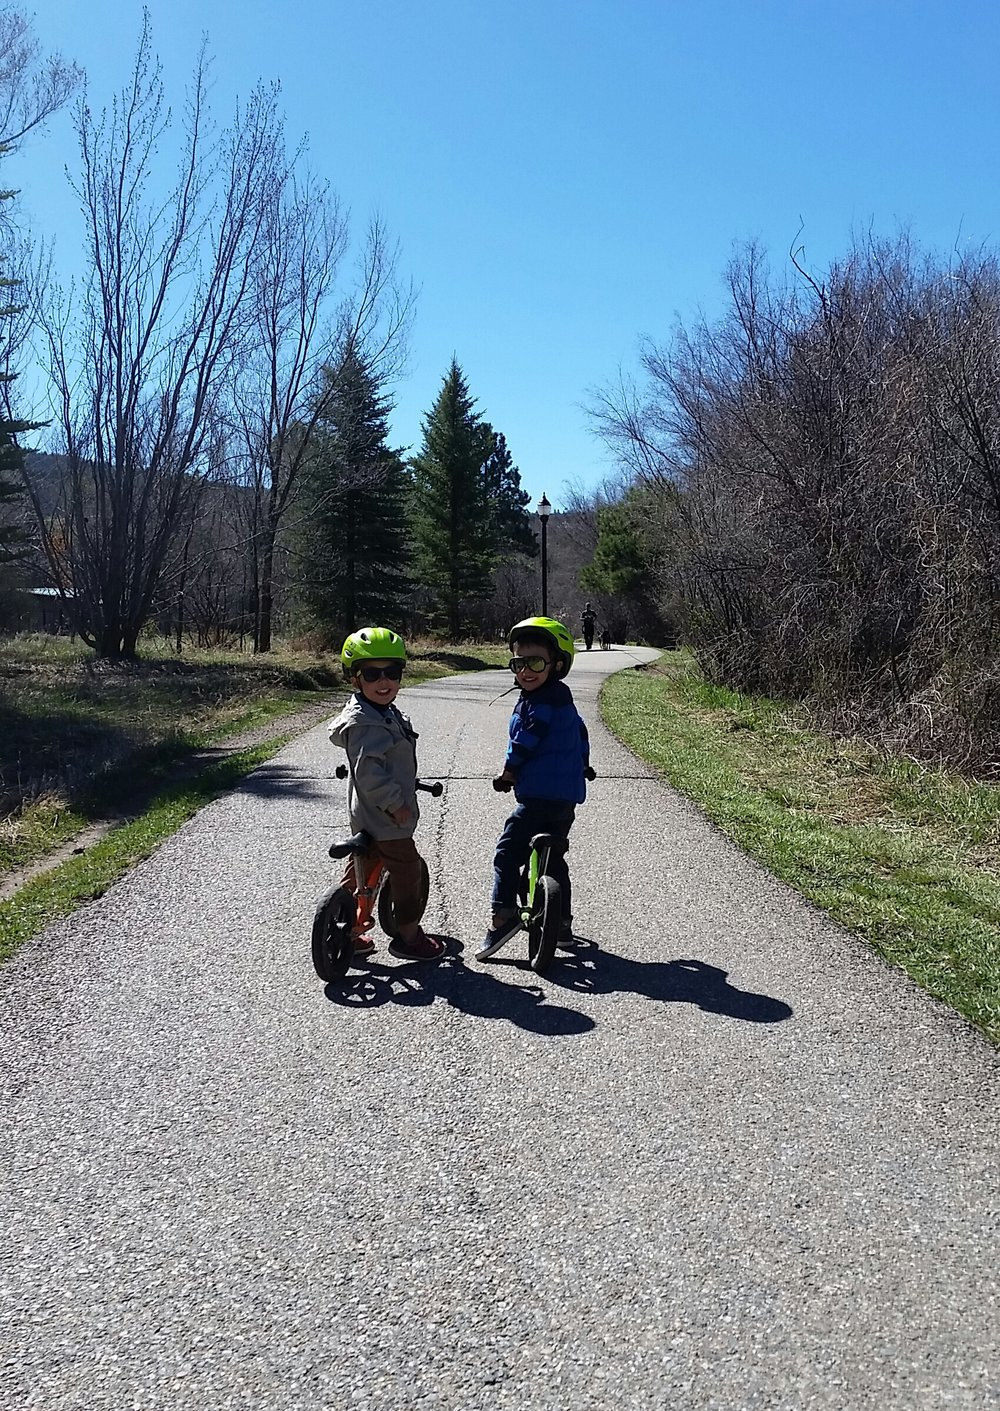 Riding bikes with my best friend in spring...